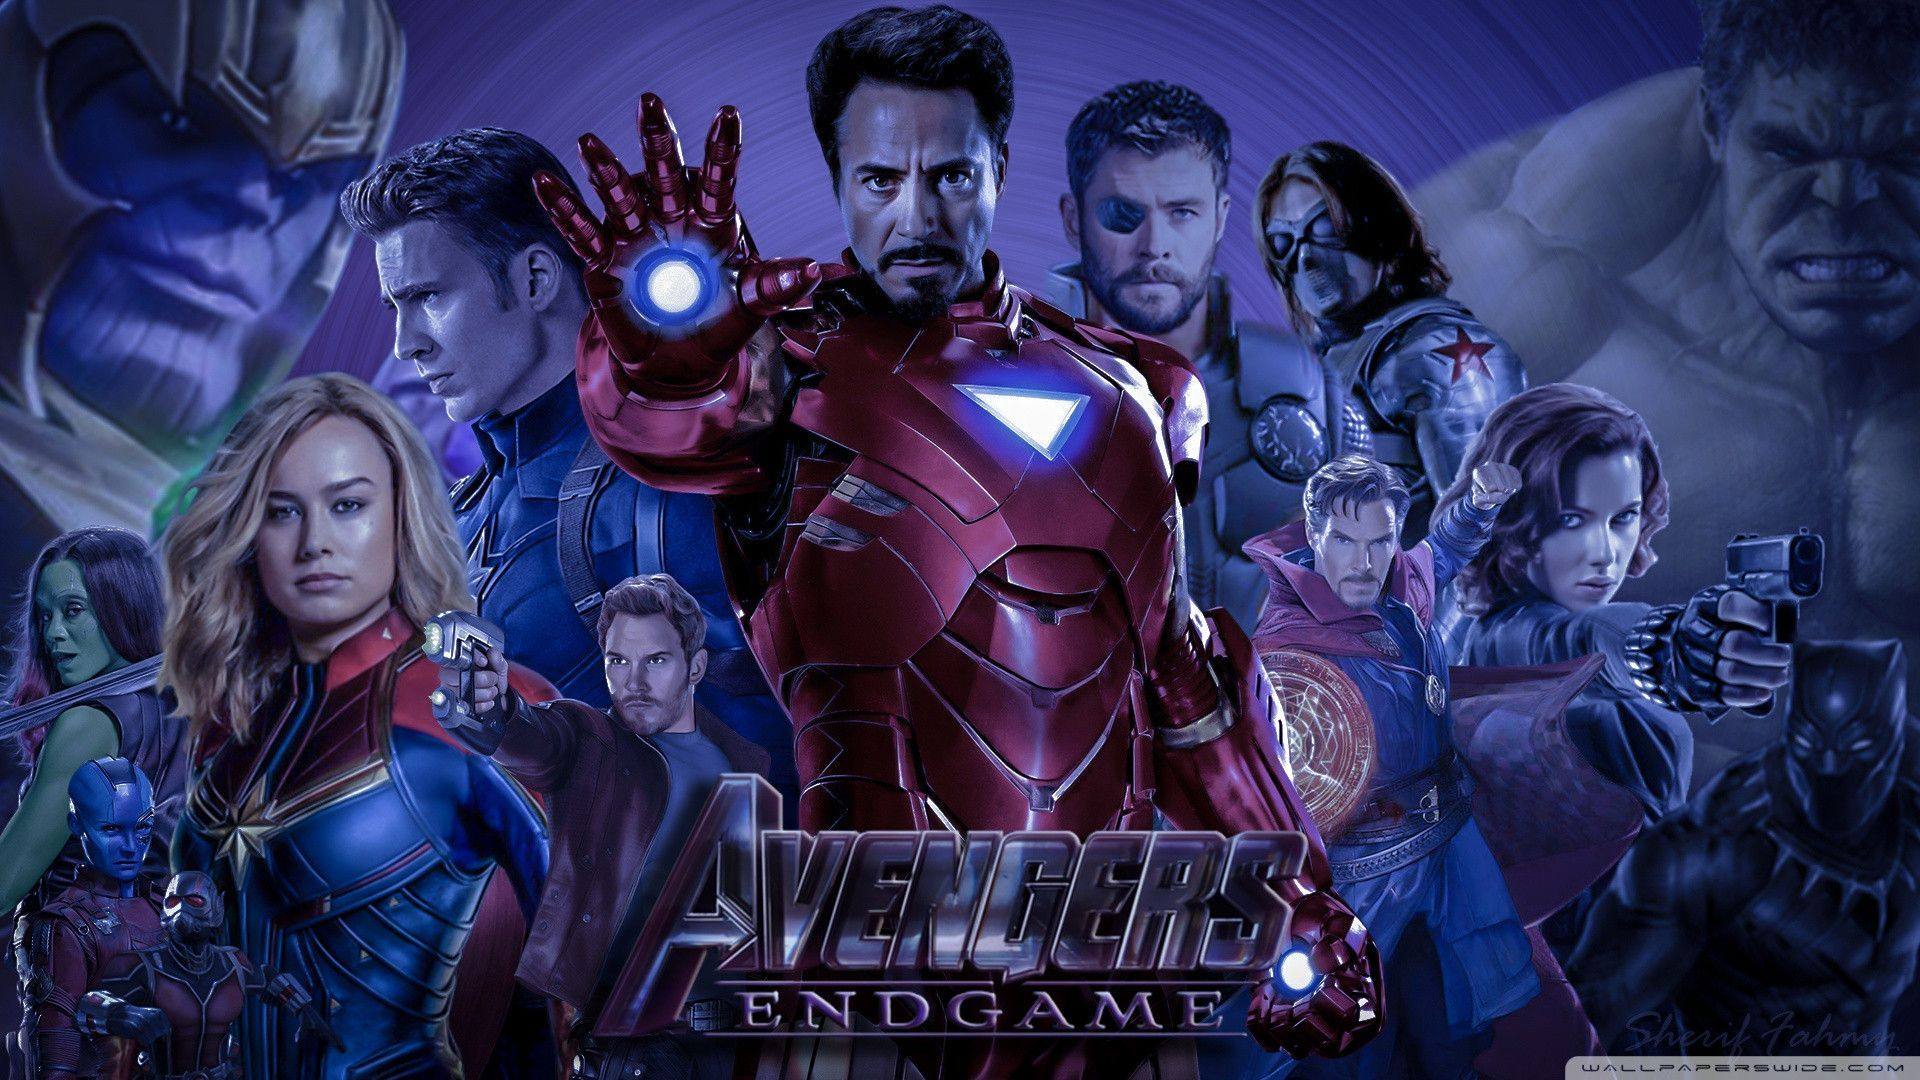 Awesome Avengers Endgame 4k Hd Desktop Wallpaper For 4k Ultra Hd Tv 4k Ultra Hd Tvs Desktop Wallpaper Hd Desktop